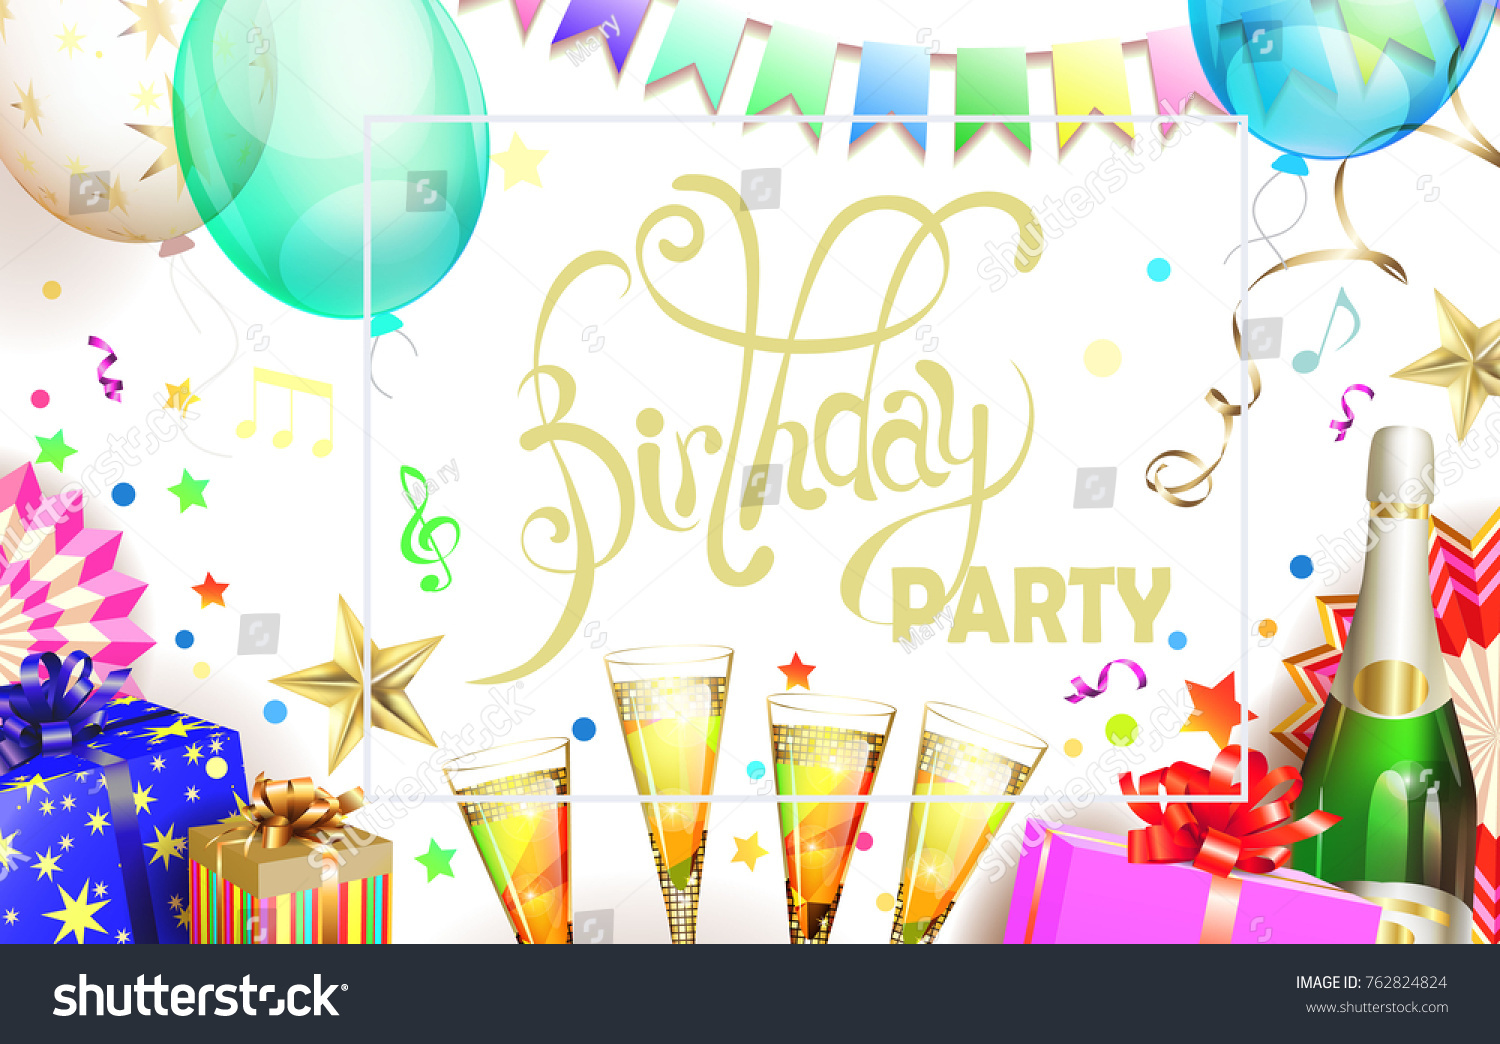 birthday poster background ; stock-vector-light-birthday-party-poster-background-with-balloon-gift-box-champagne-and-confetti-762824824